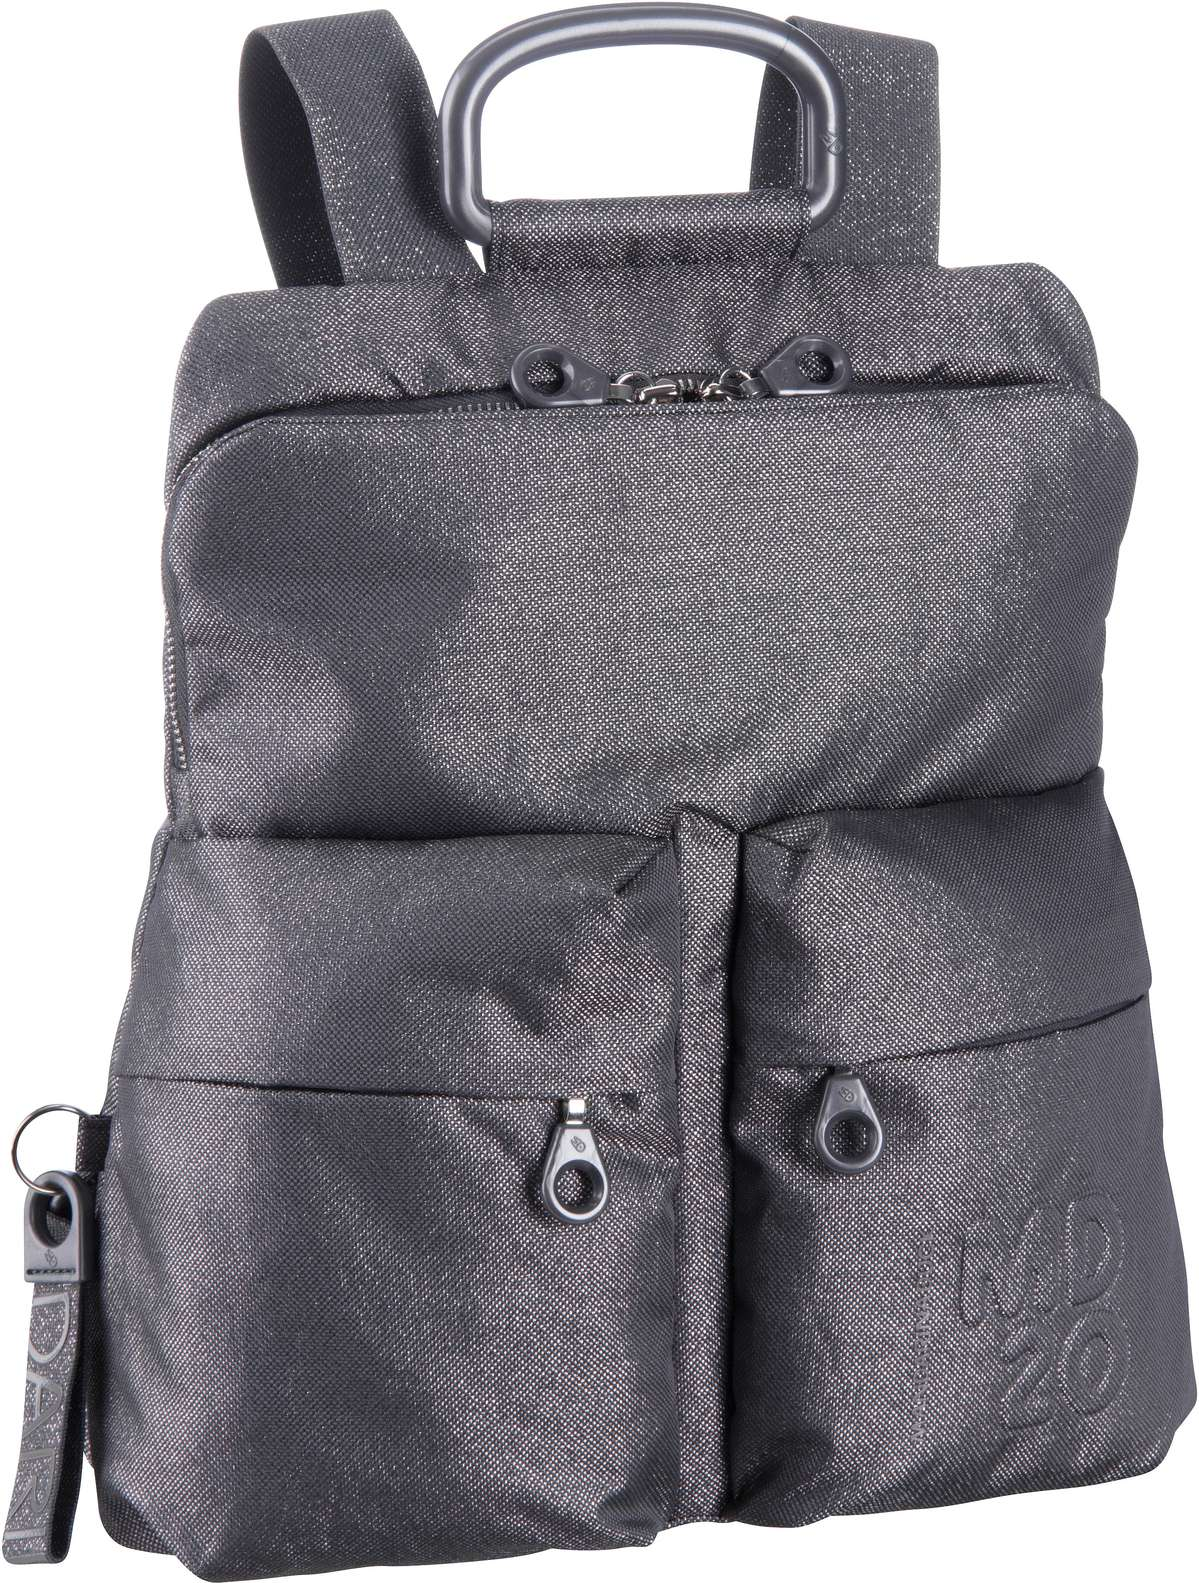 Rucksack / Daypack MD20 Lux Backpack QNTZ4 Lead